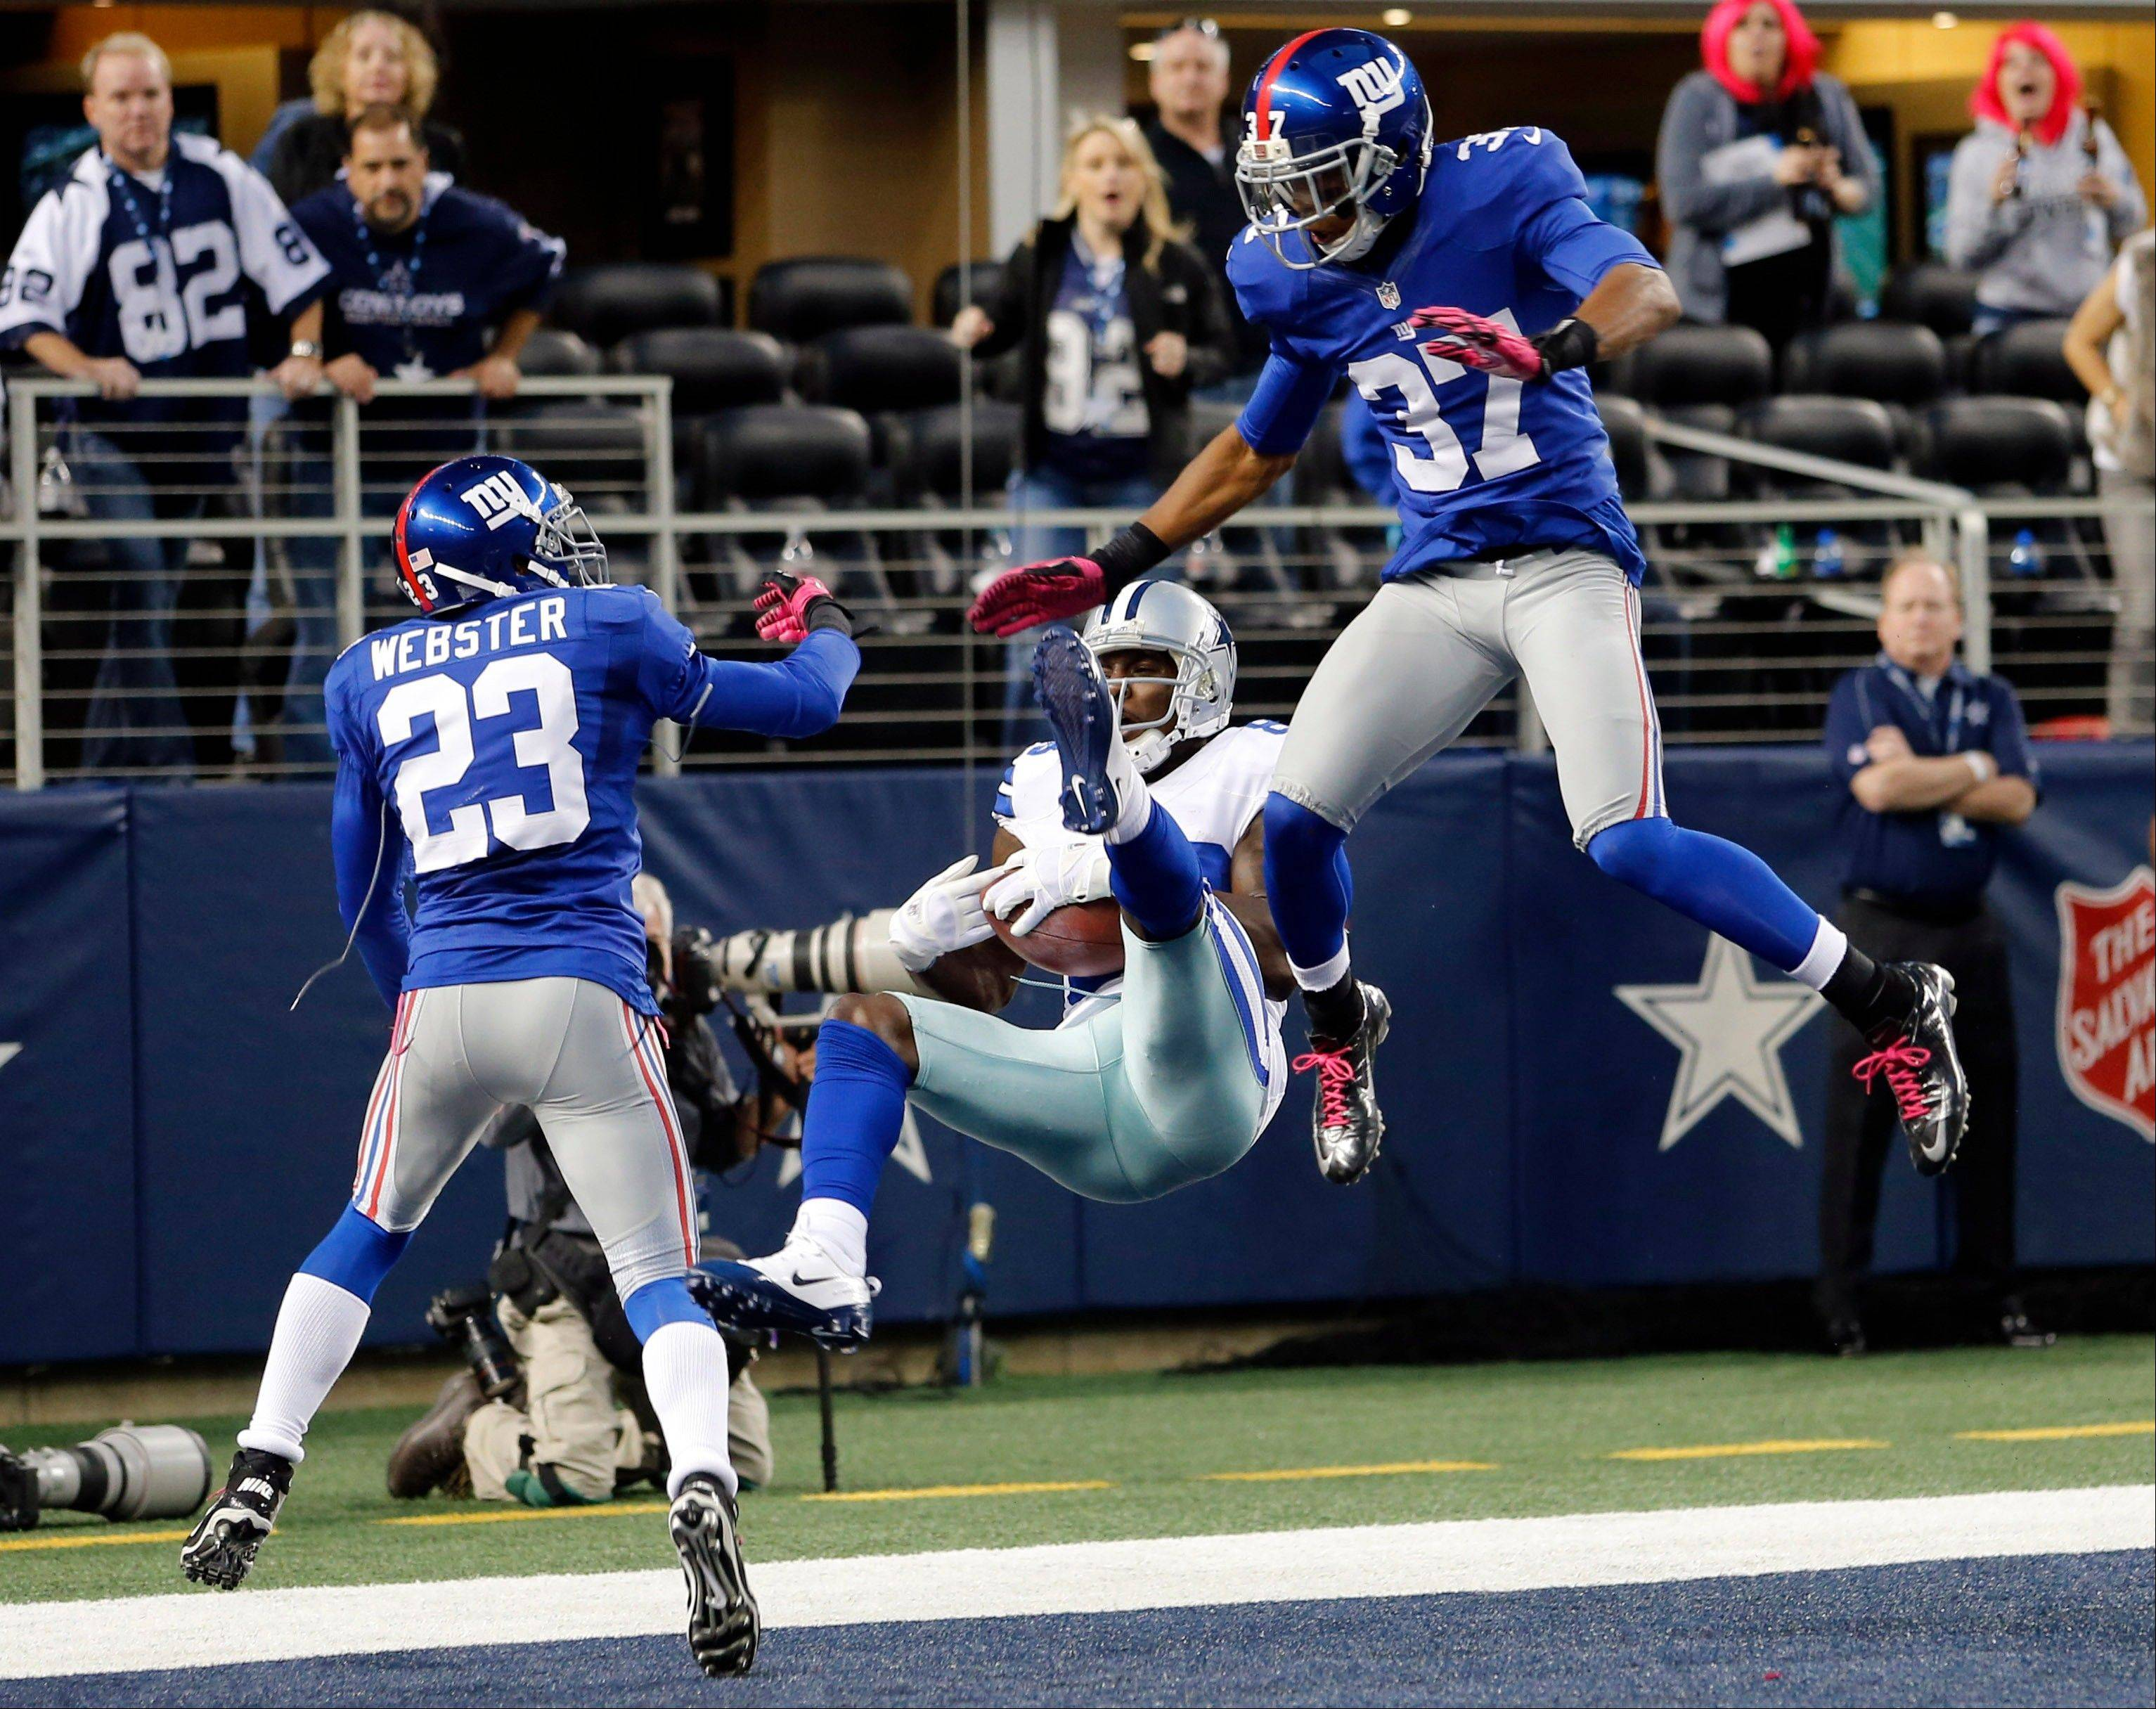 Dallas Cowboys wide receiver Dez Bryant (88) makes a last-minute reception between New York Giants cornerbacks Corey Webster (23) and Michael Coe (37) for a touchdown that was nullified after review.